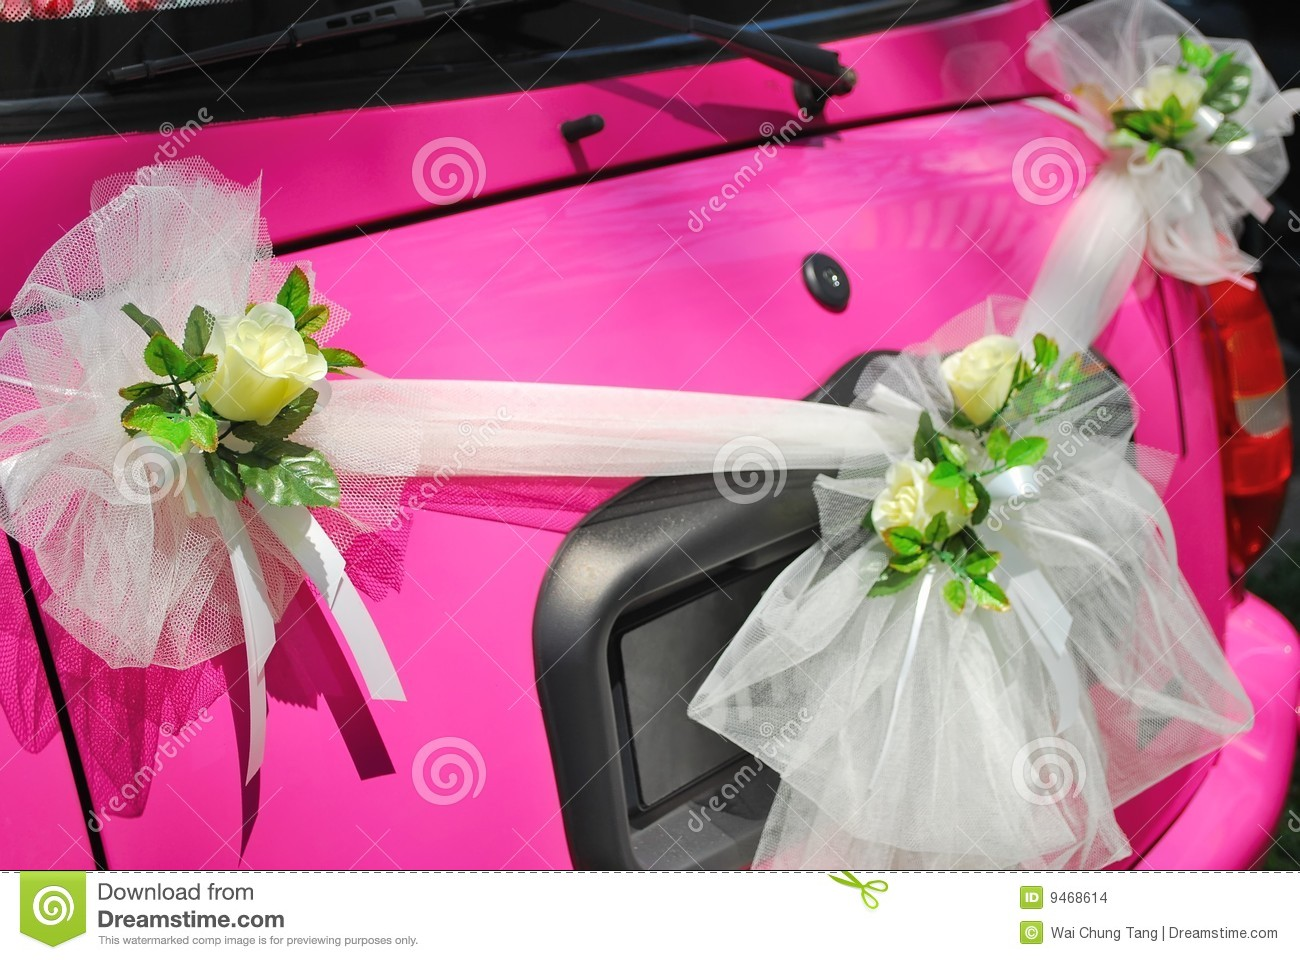 Pink Wedding Car With Flower Decorations Stock Photo - Image of ...